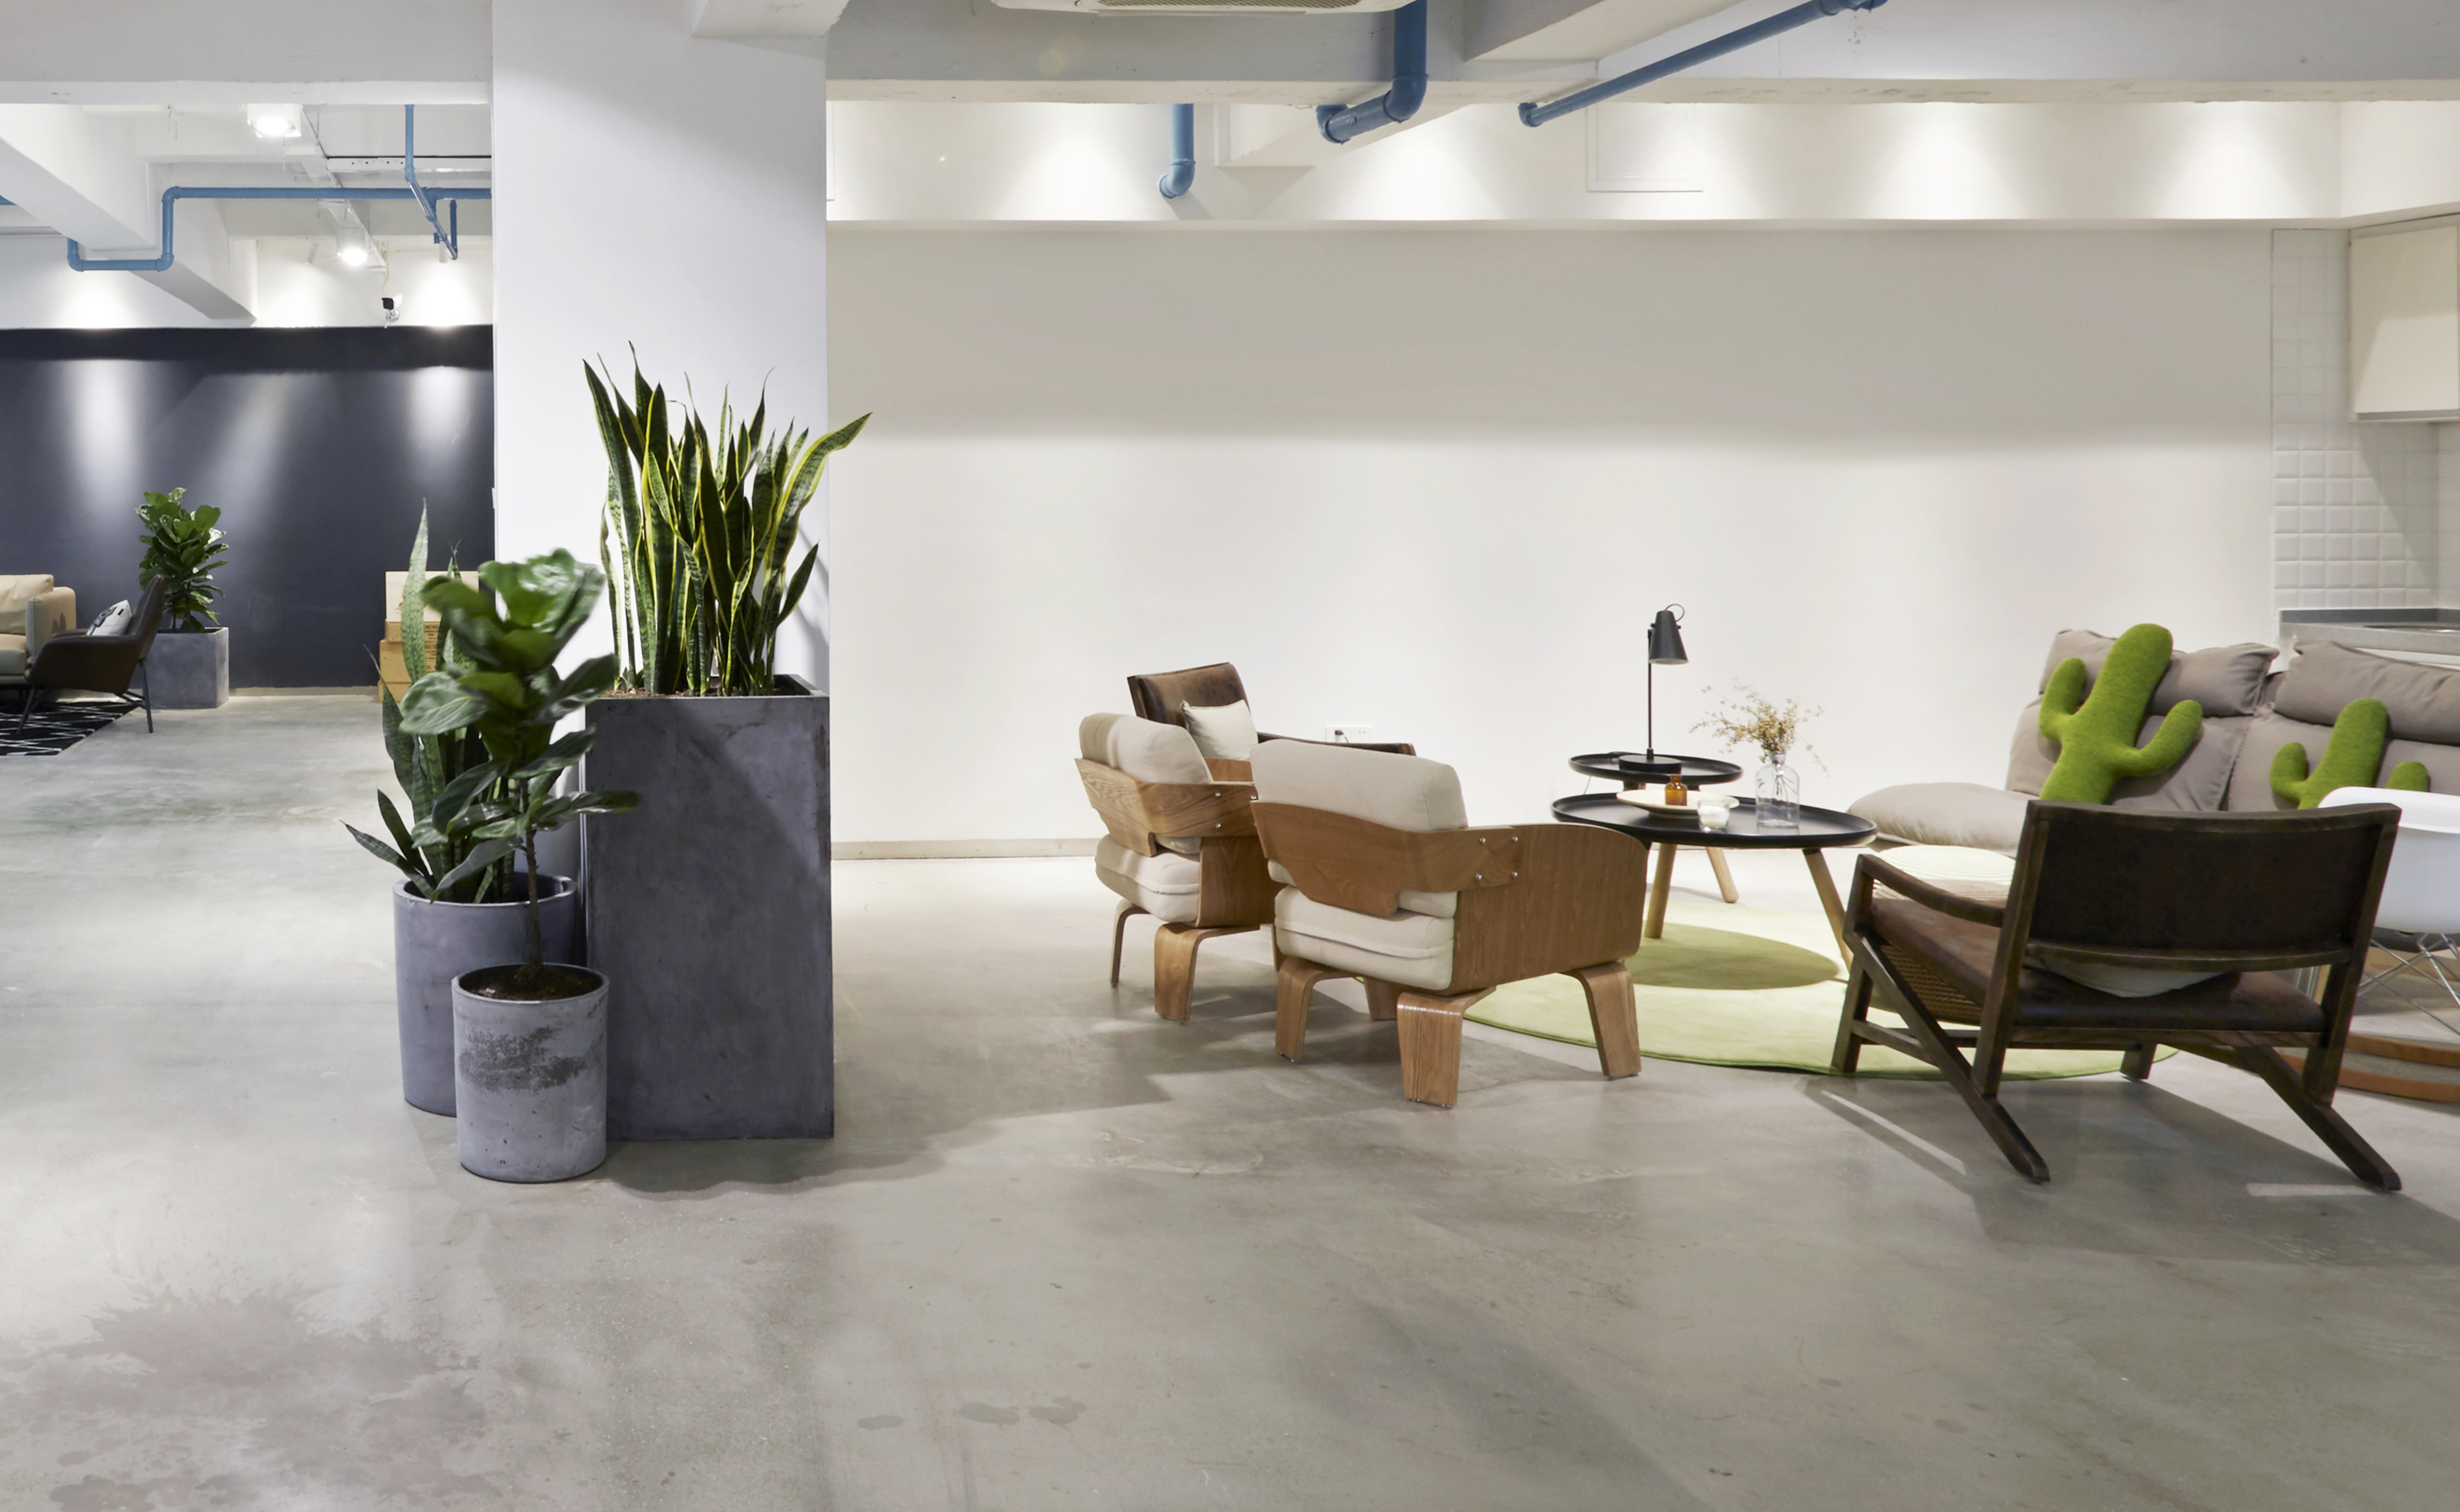 office space with planters